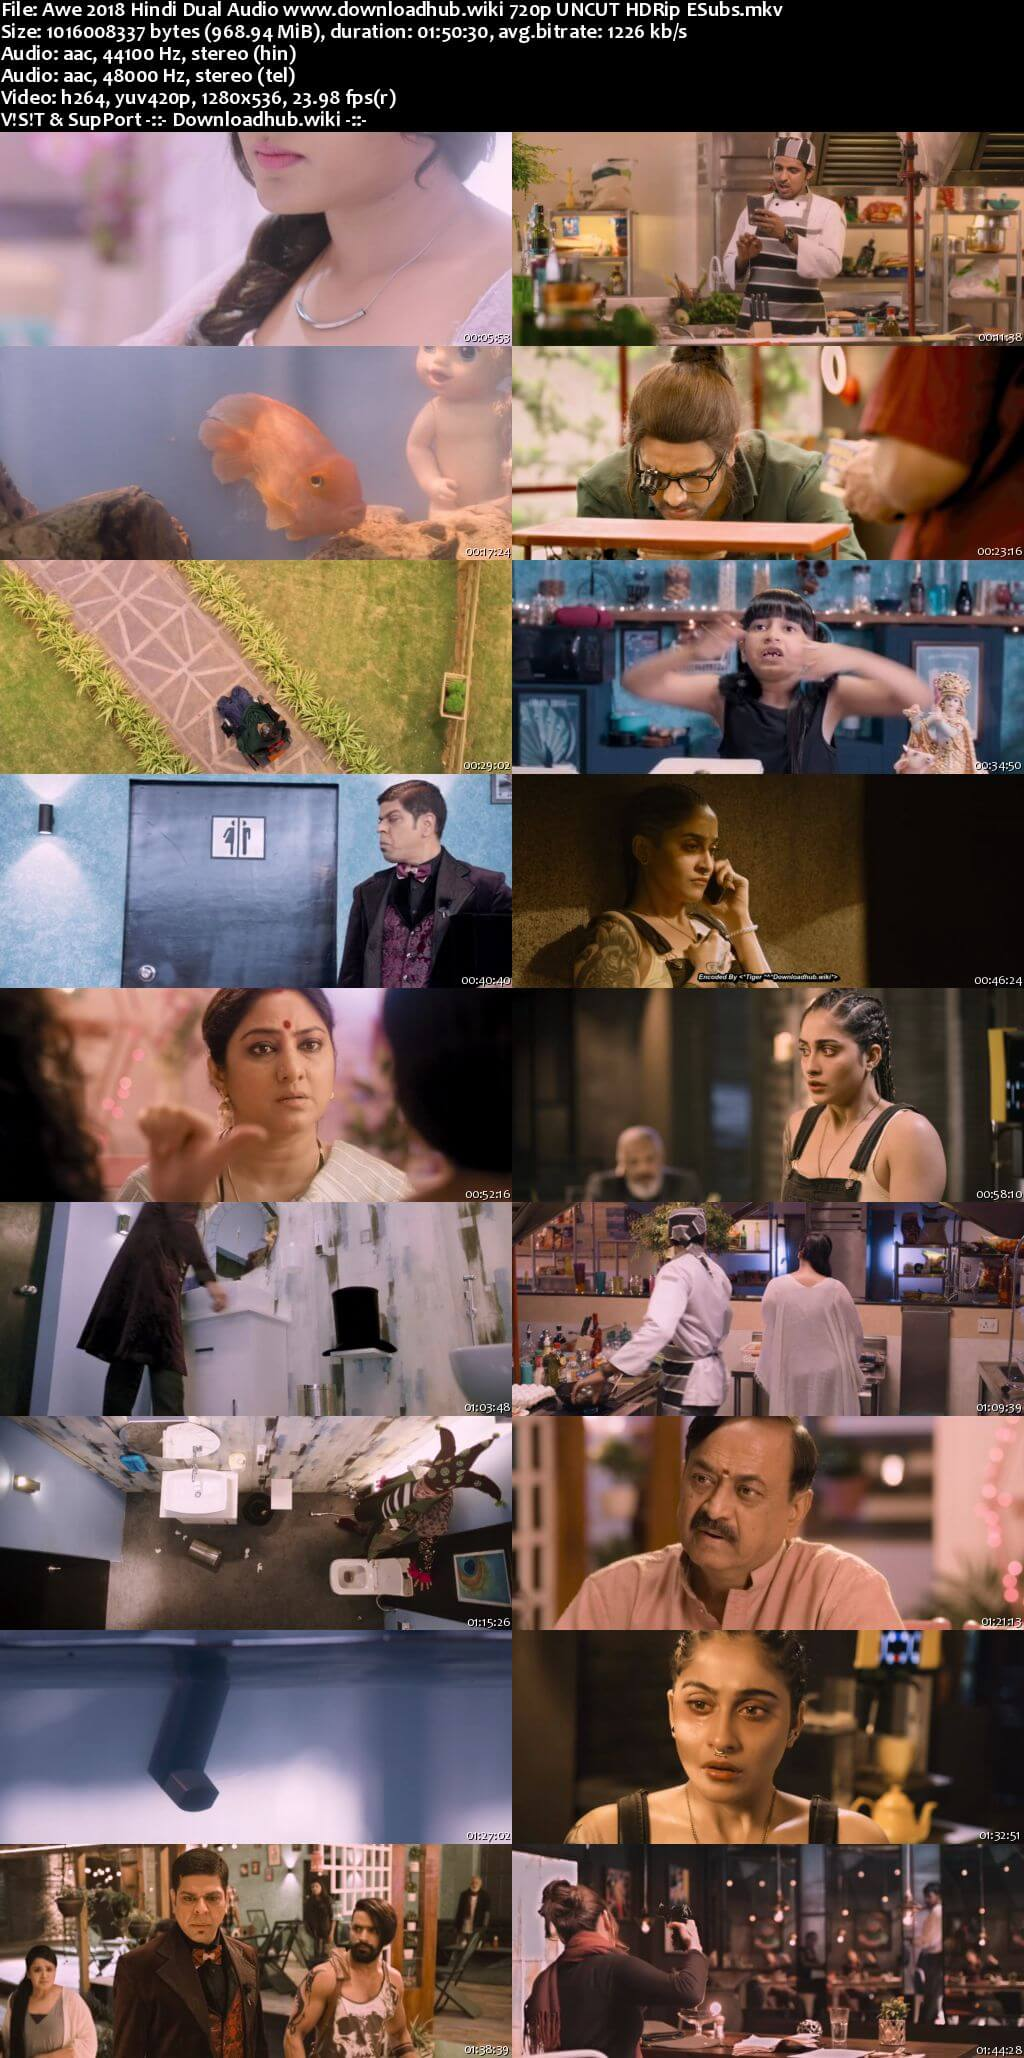 Awe 2018 Hindi Dual Audio 720p UNCUT HDRip ESubs